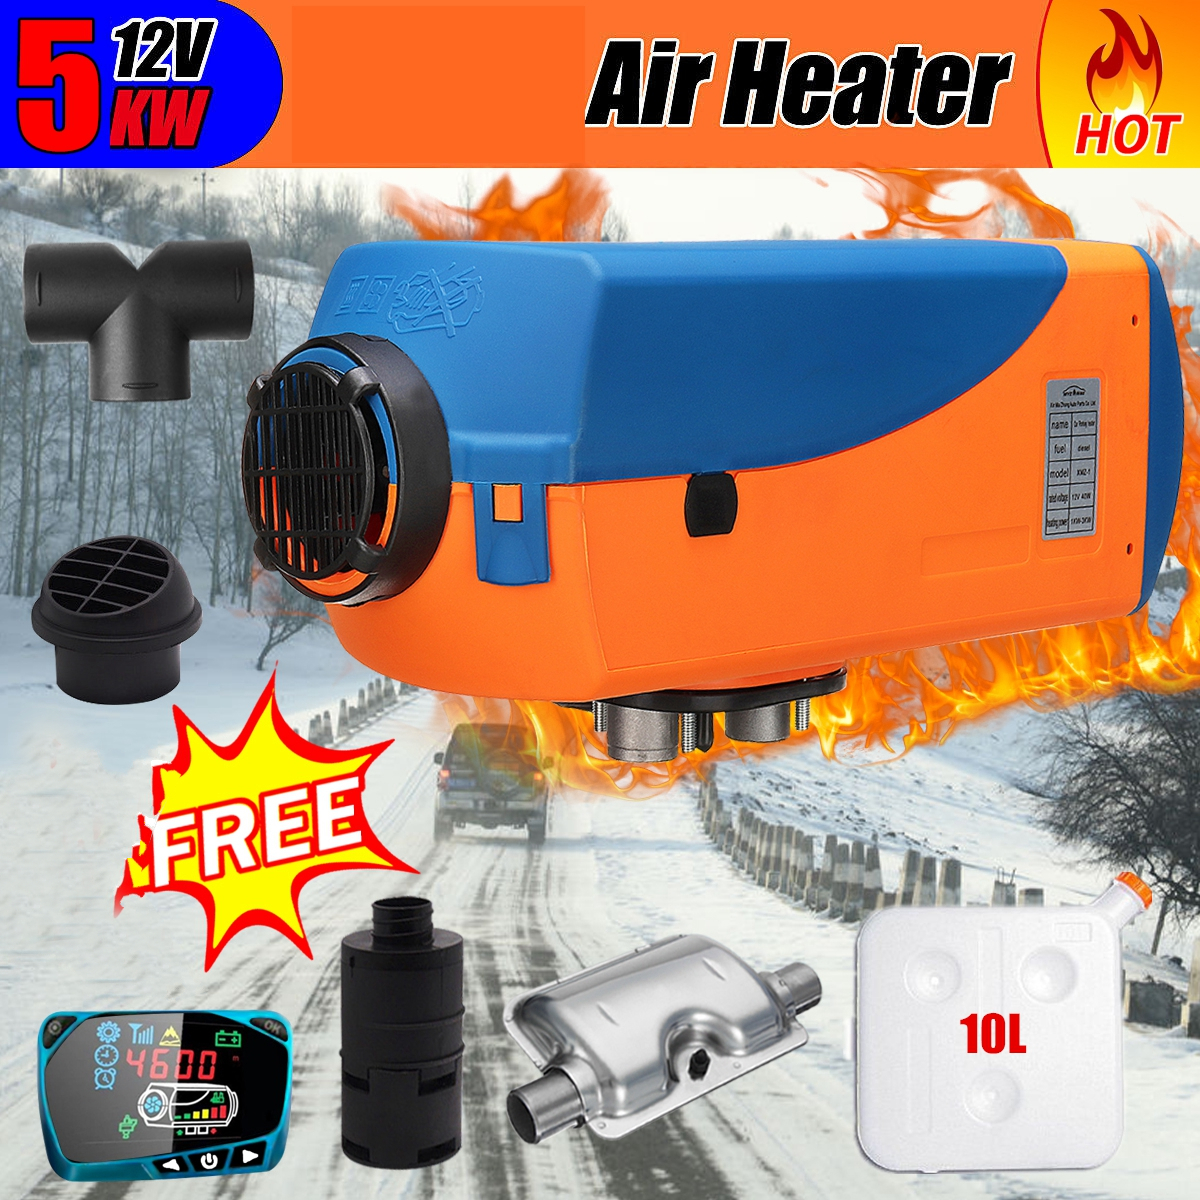 12V 5KW Car Heater Air Diese l Heater Car Warmer Heating Machine with Digital Switch For Trailer Motorhome Truck Boat Bus